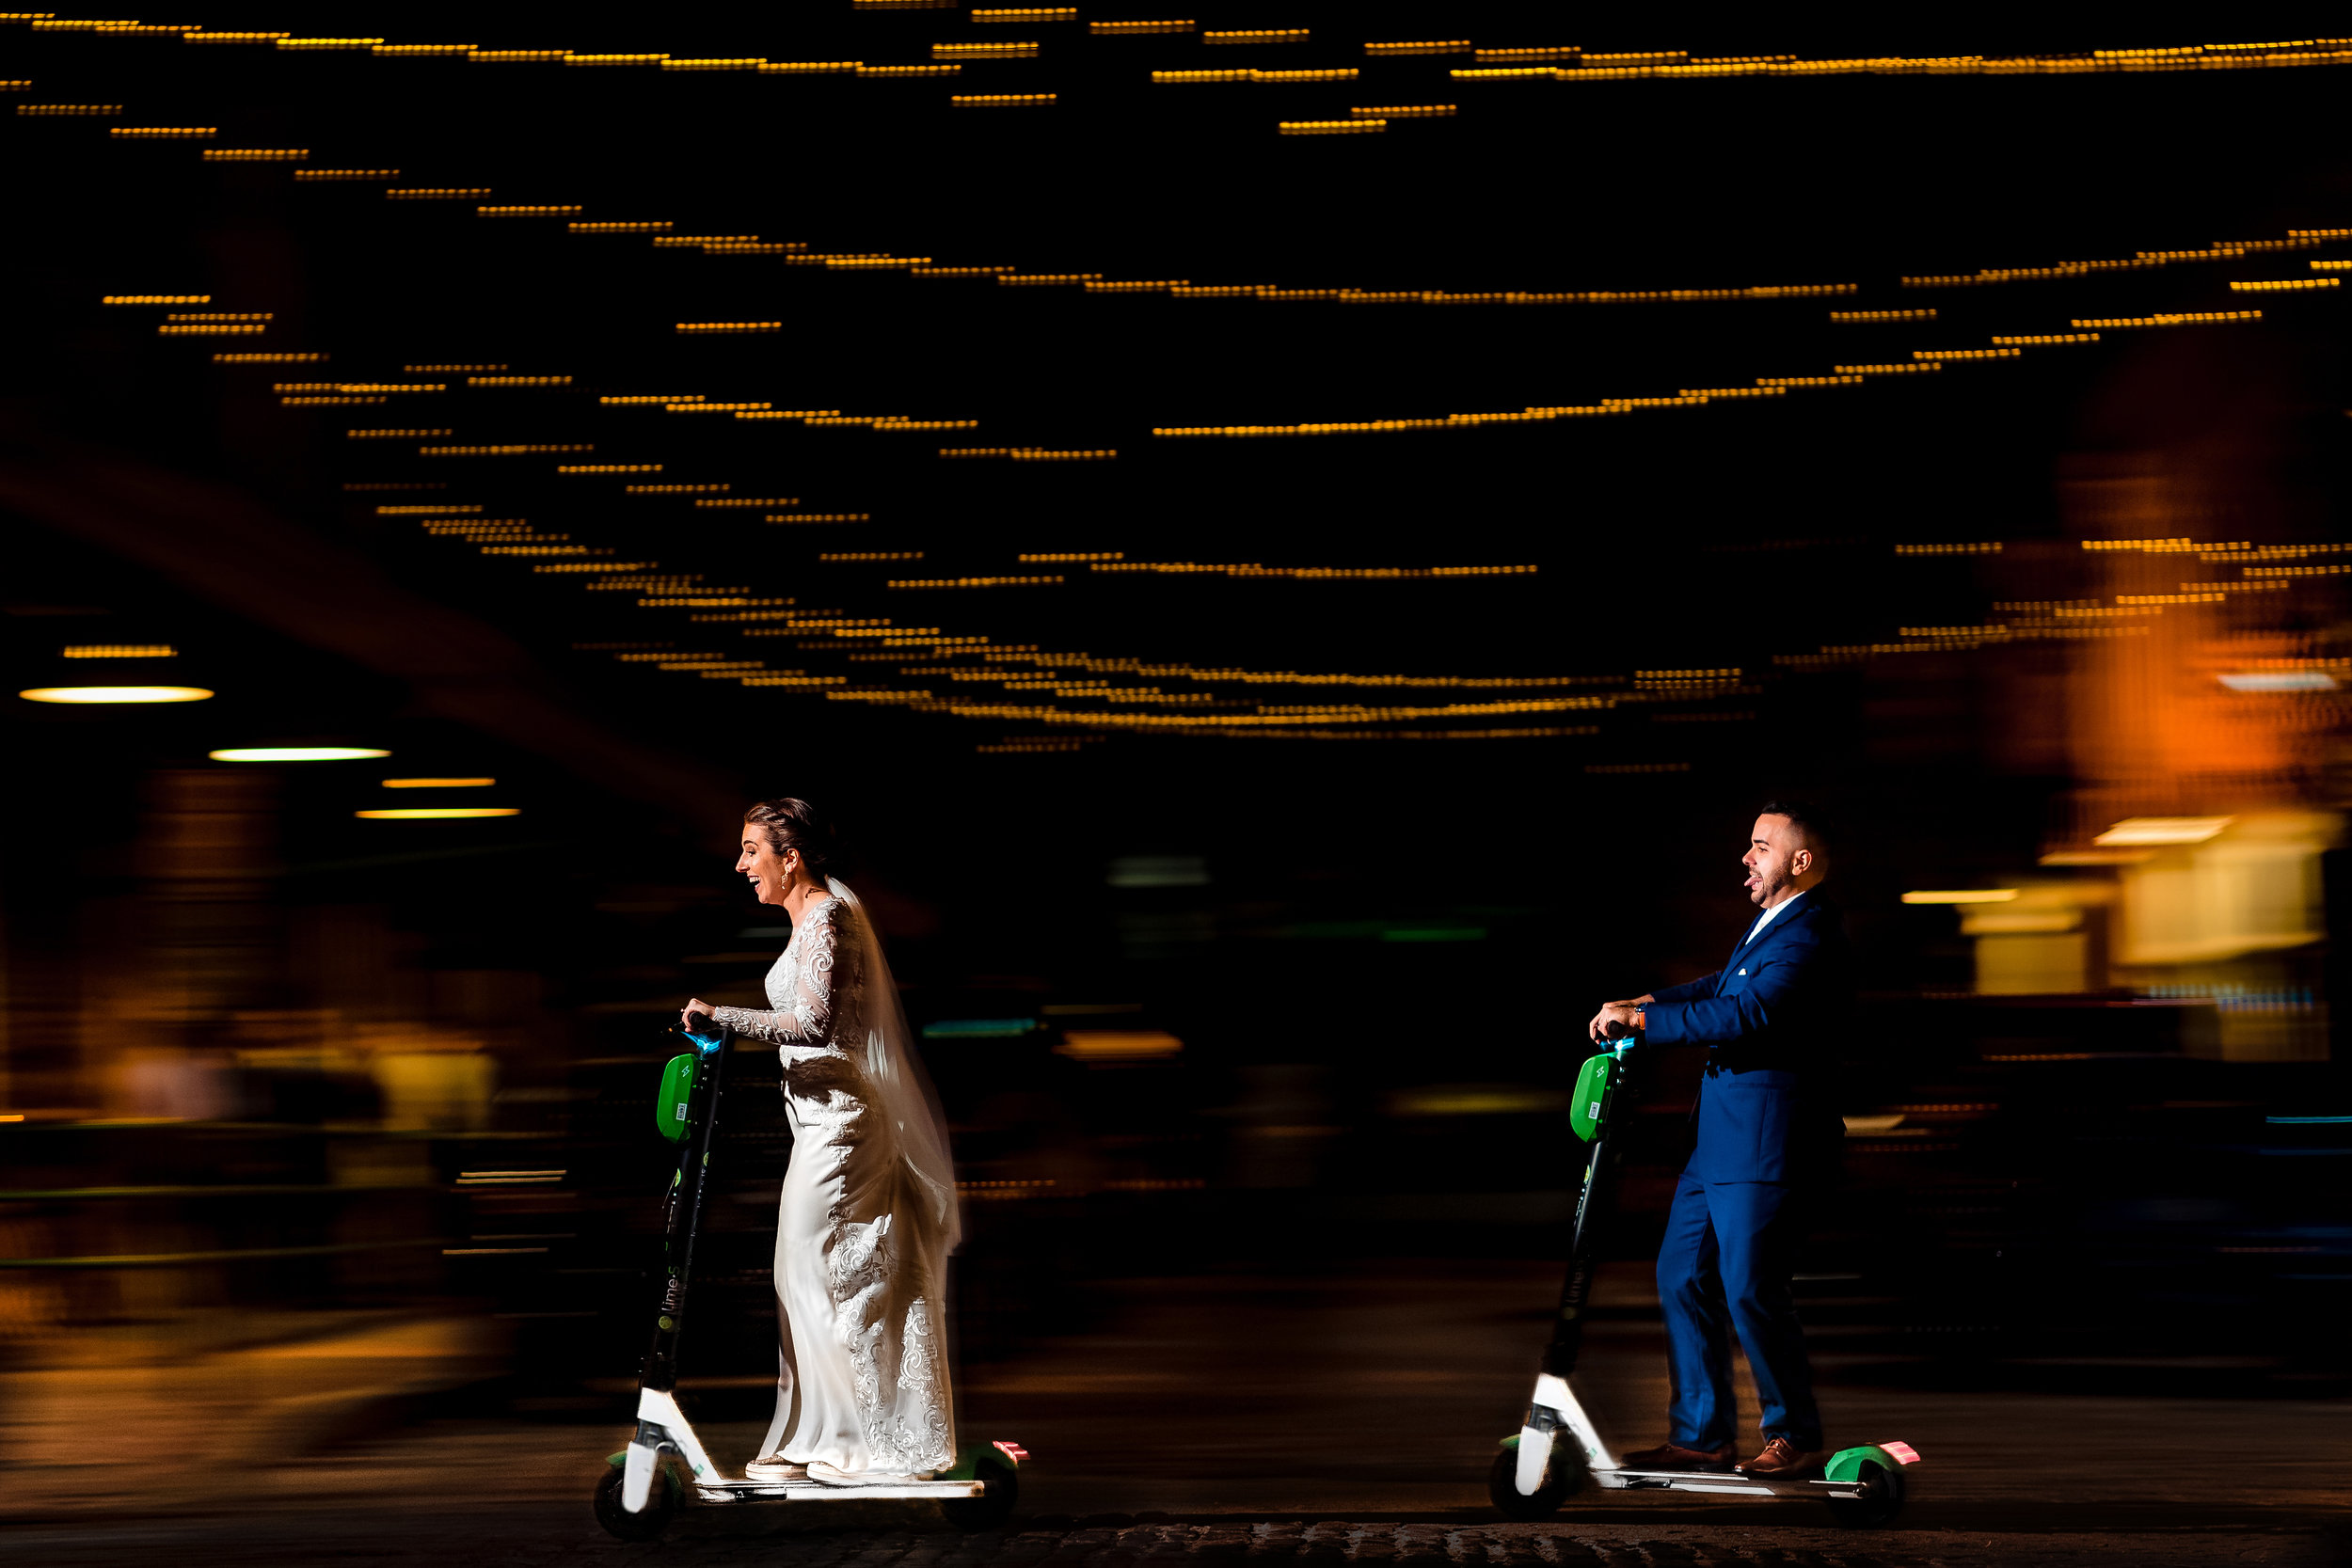 bride&groom-scooter.jpg